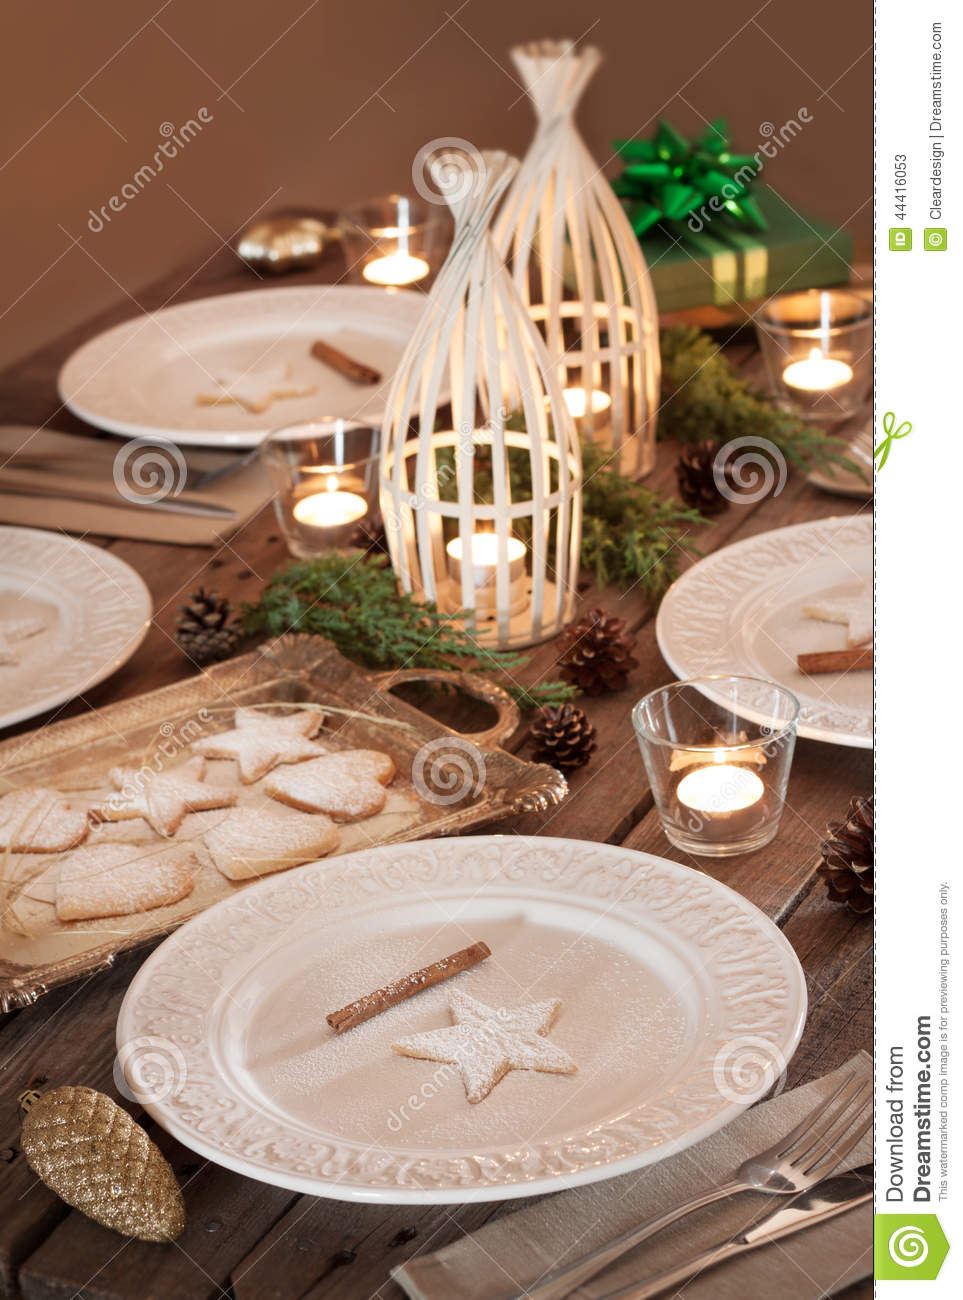 Christmas table setting rustic style natural decorations stock photo imag - Deco table noel chic ...